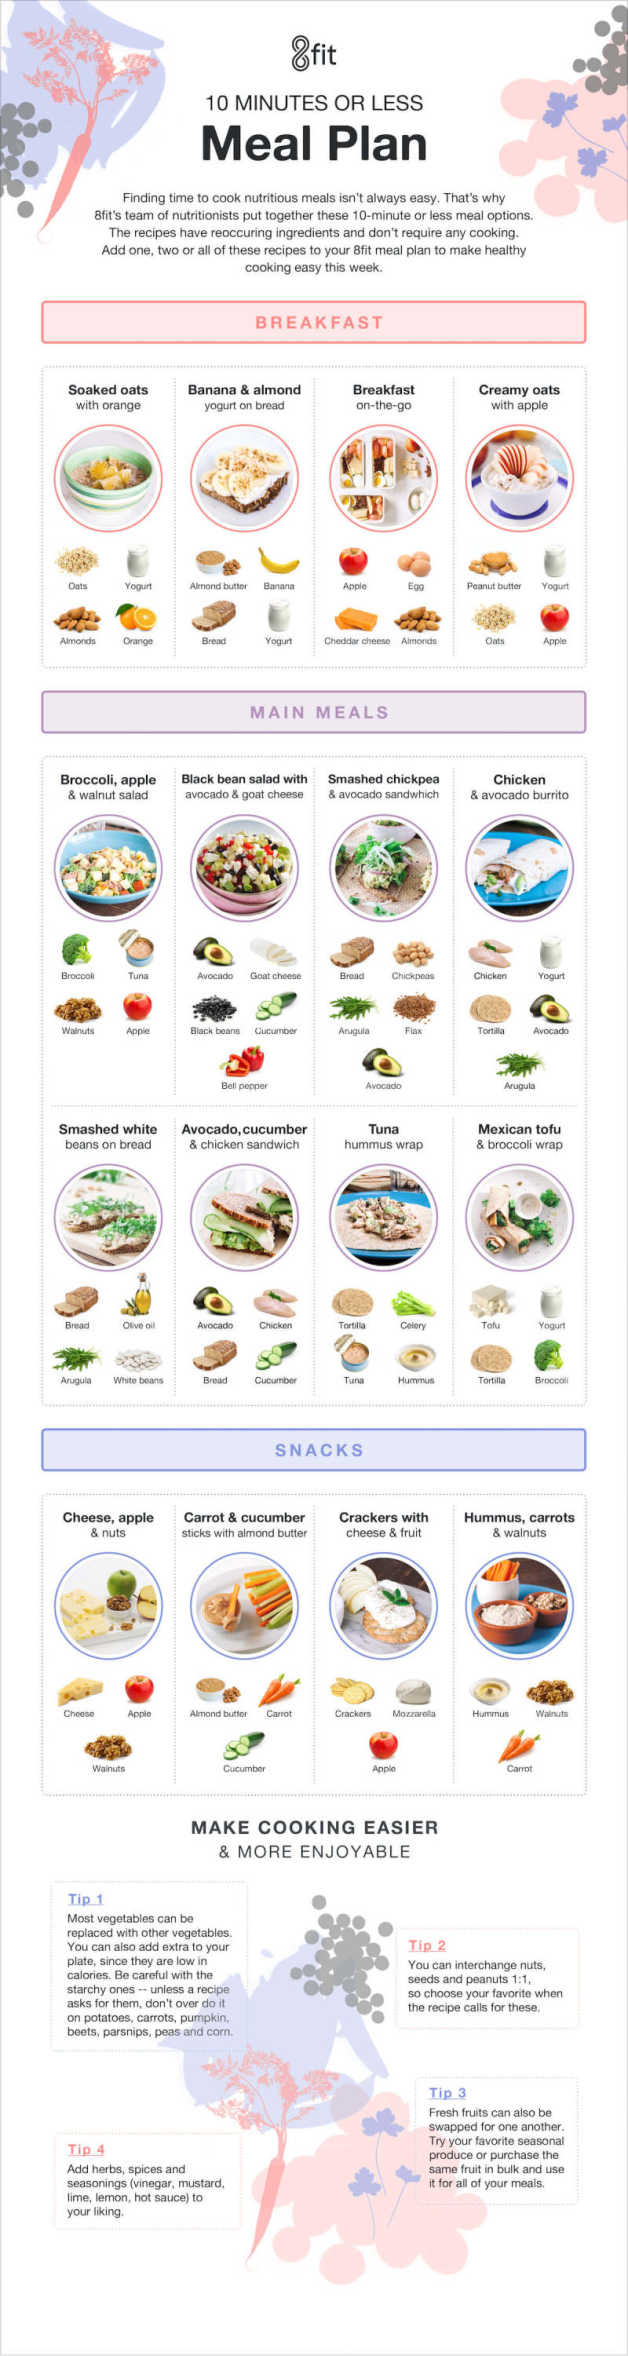 10 minutes or less meal plan infographic